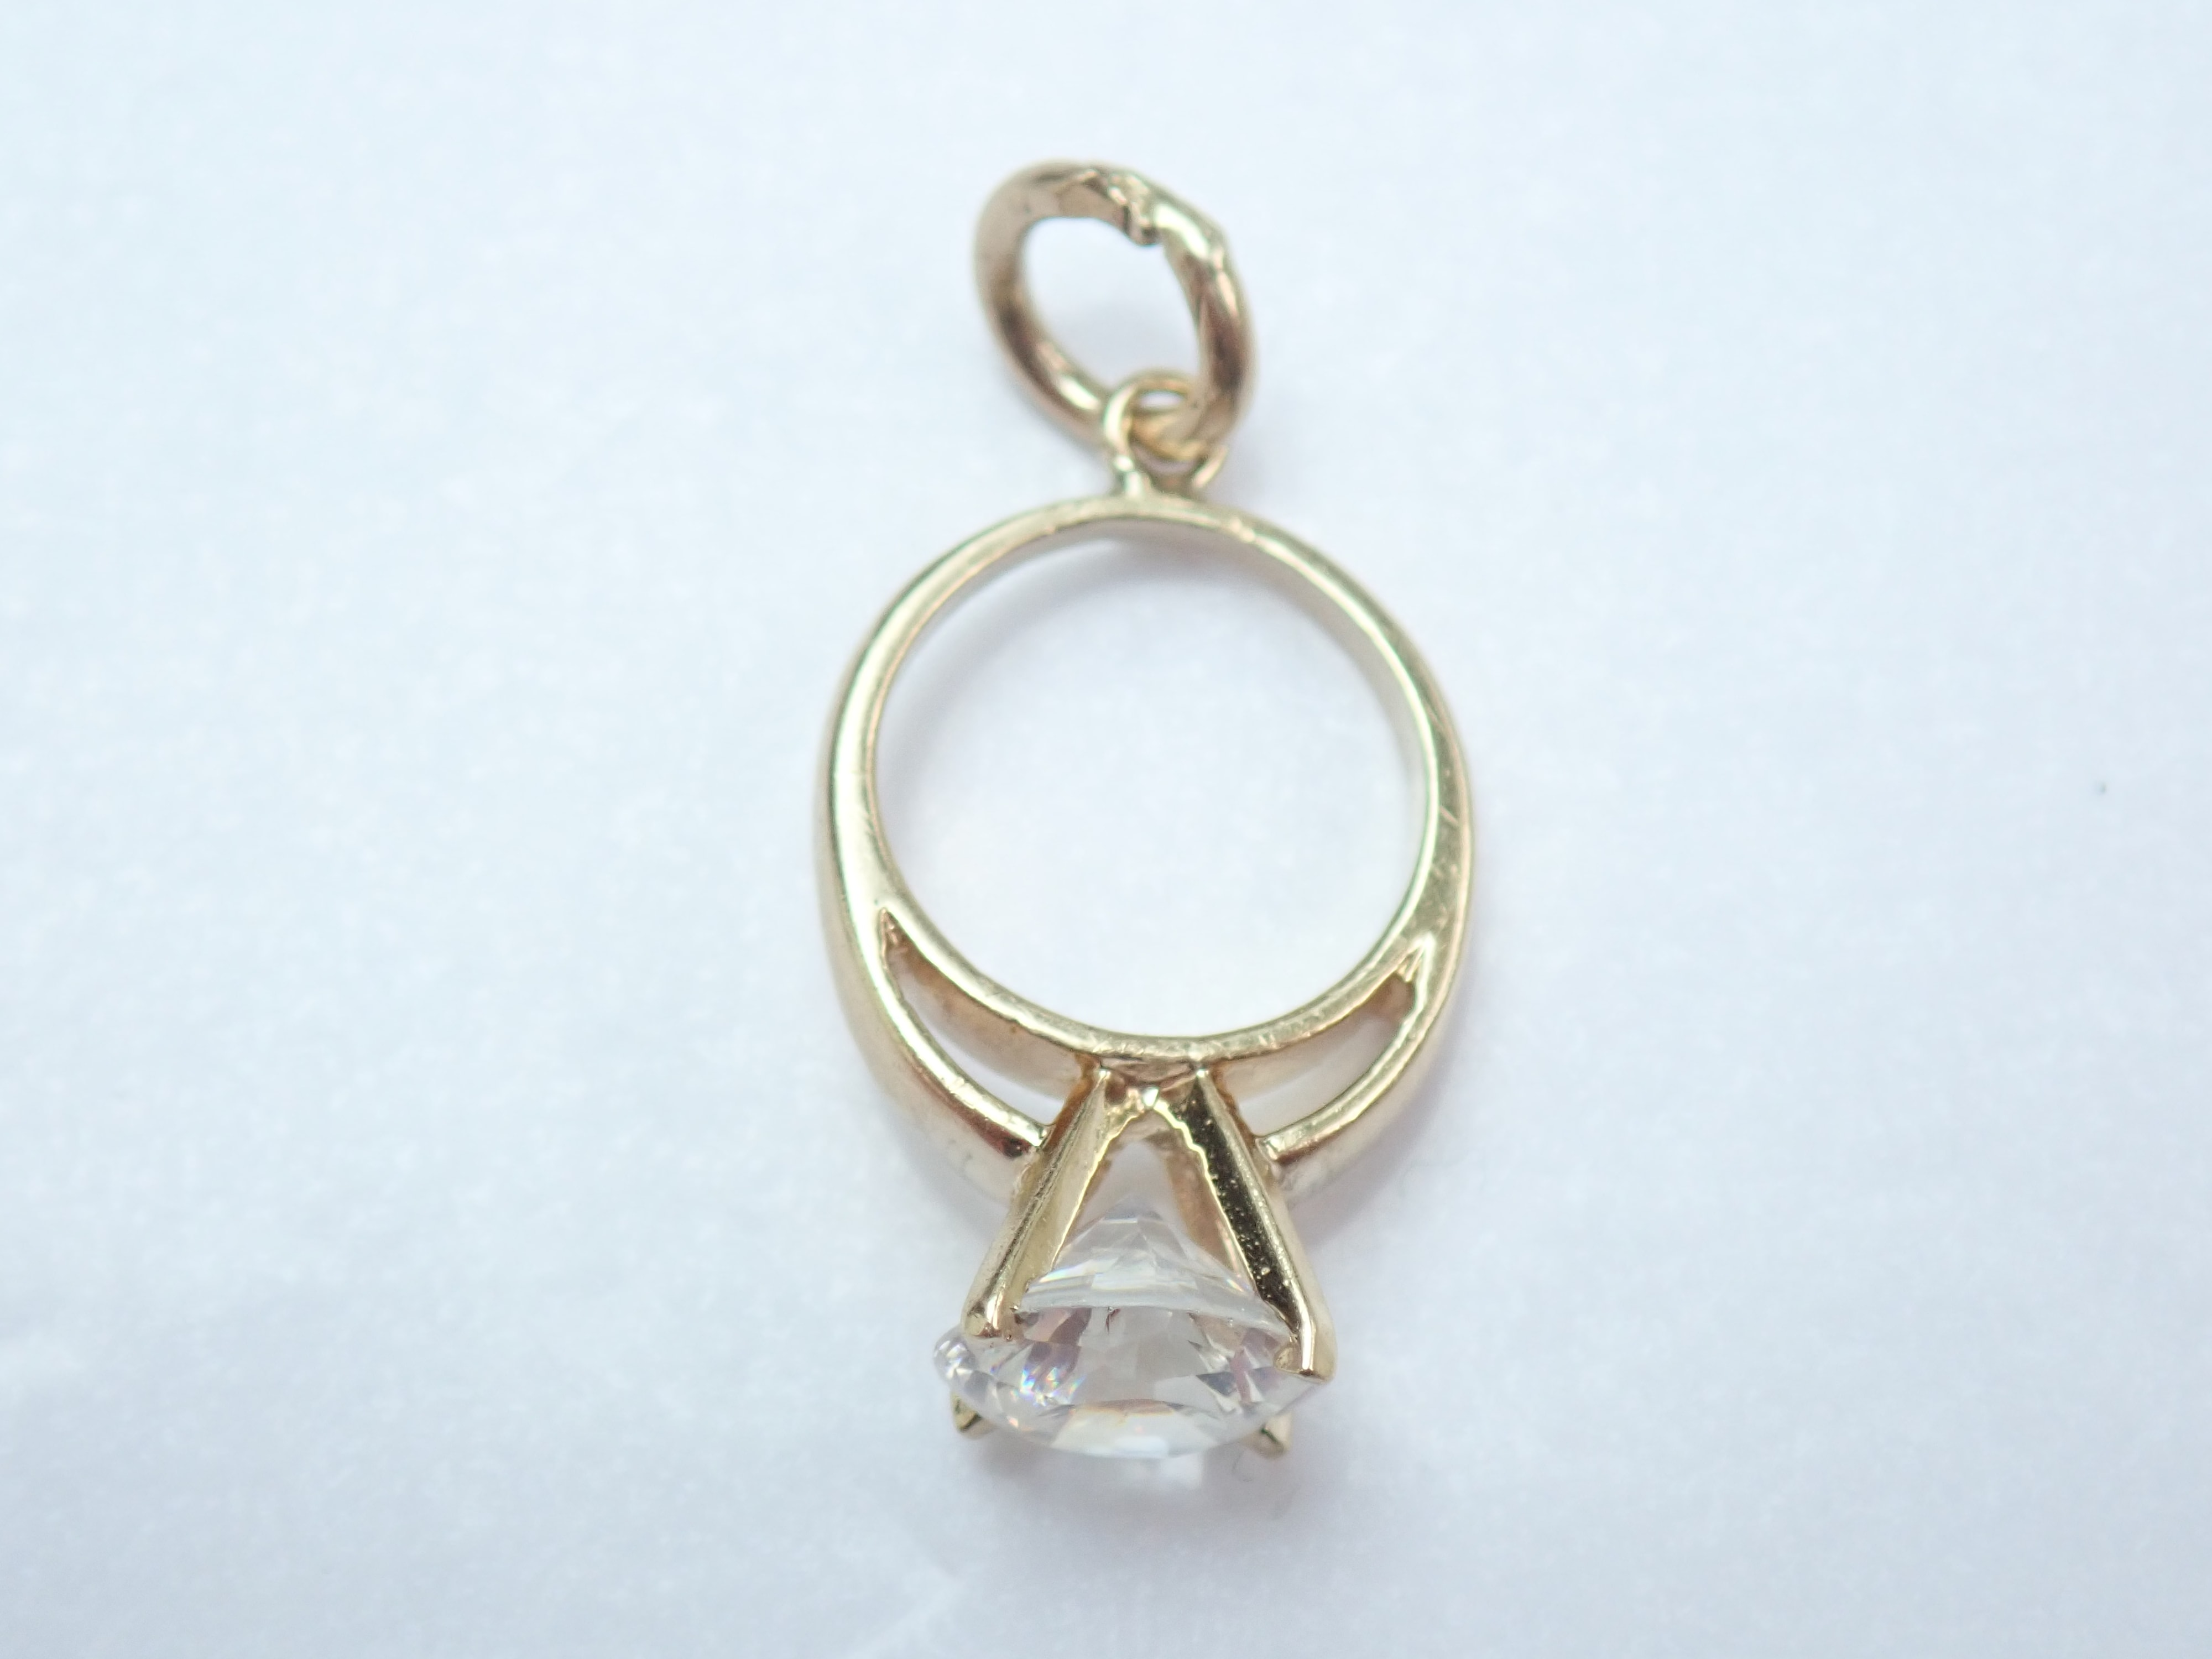 375 Yellow Gold Cubic Zirconia Solitaire Ring Pendant Charm -1.11gms #21